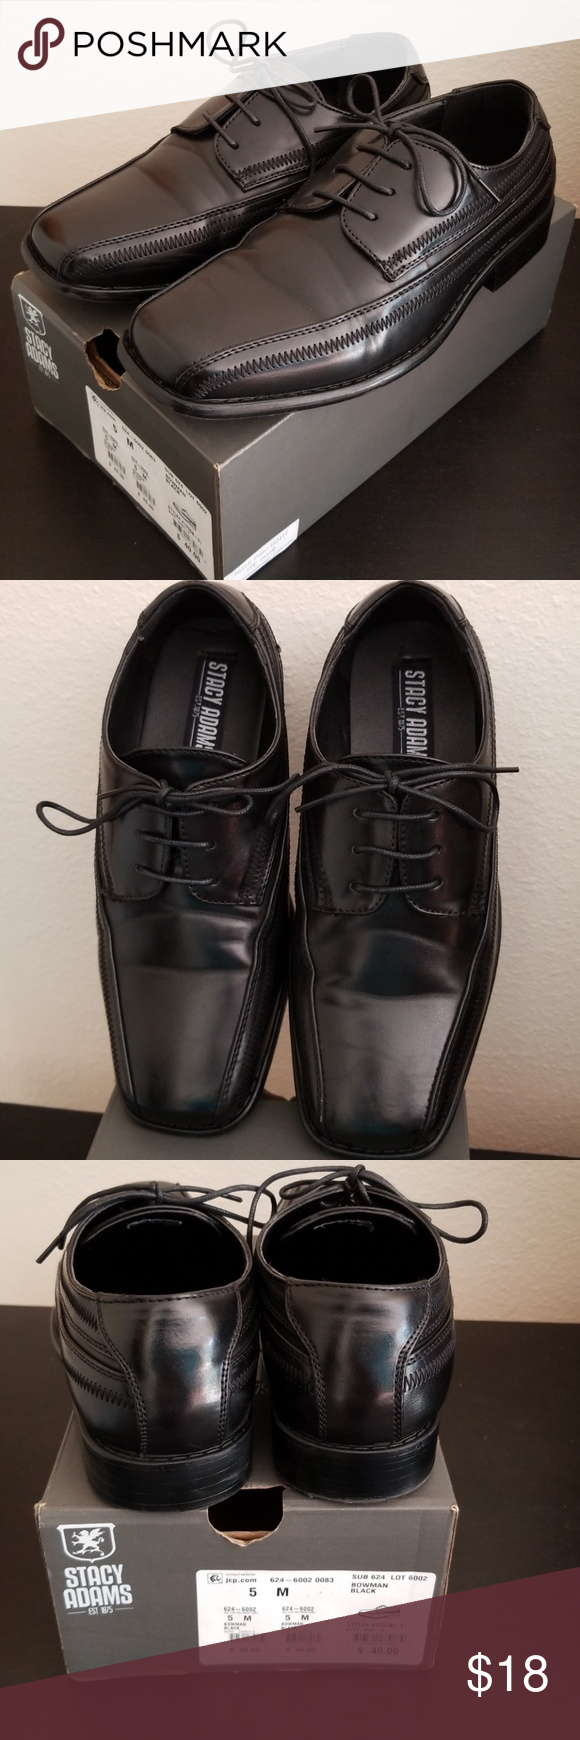 Stacy Adams Boys Dress Shoes Dress shoes worn only once for a wedding. Lace  up d88c4e6c87d